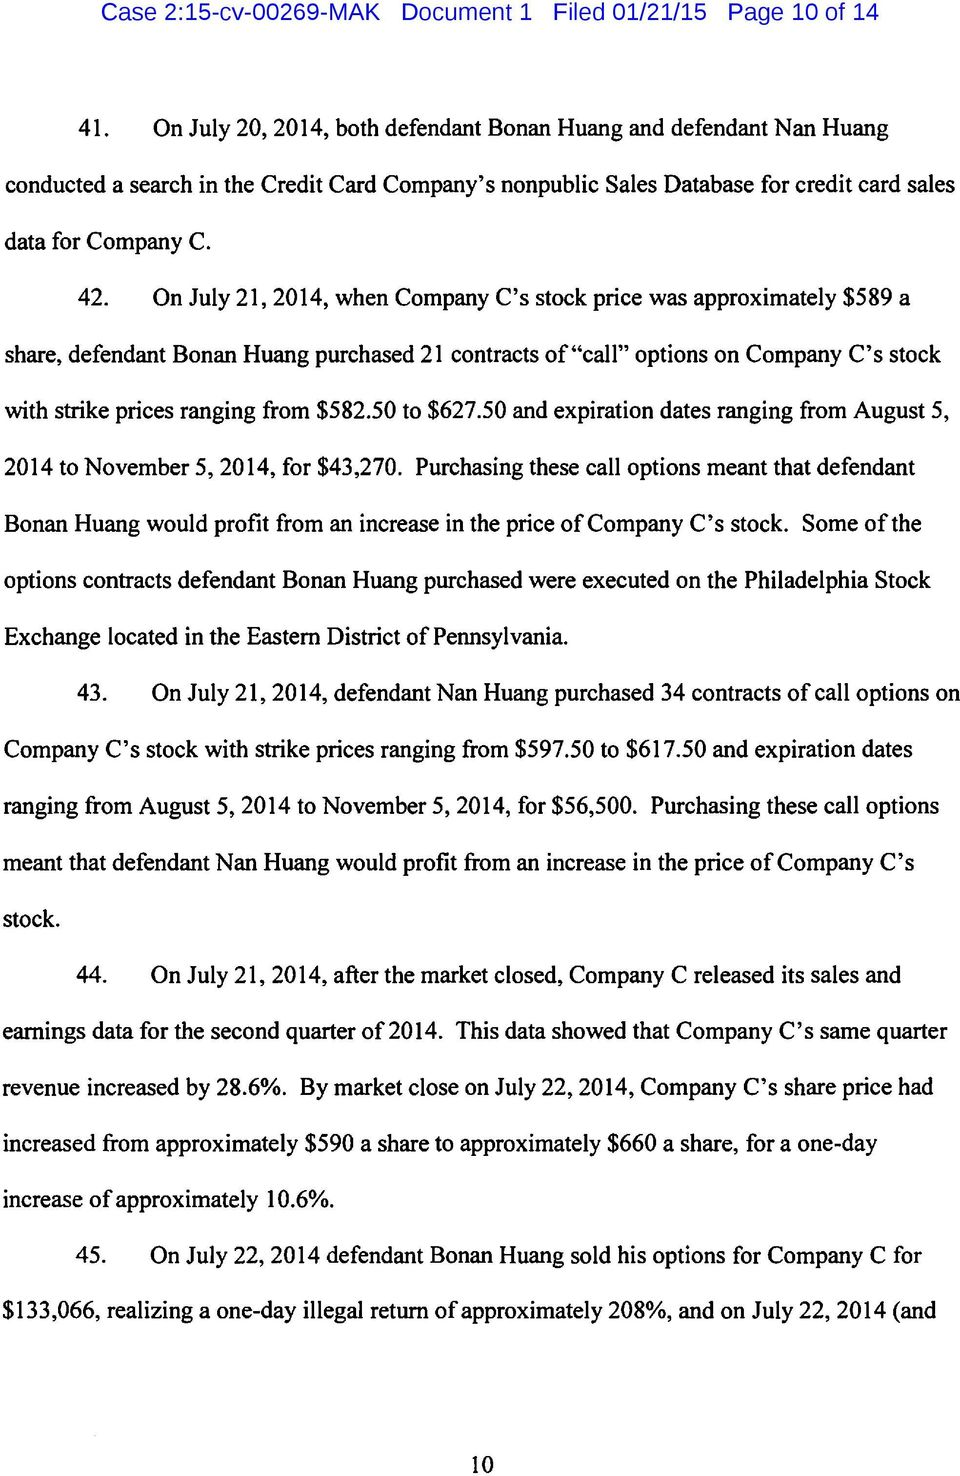 "On July 21, 2014, when Company C's stock price was approximately $589 a share, defendant Bonan Huang purchased 21 contracts of""call"" options on Company C's stock with strike prices ranging from $582."